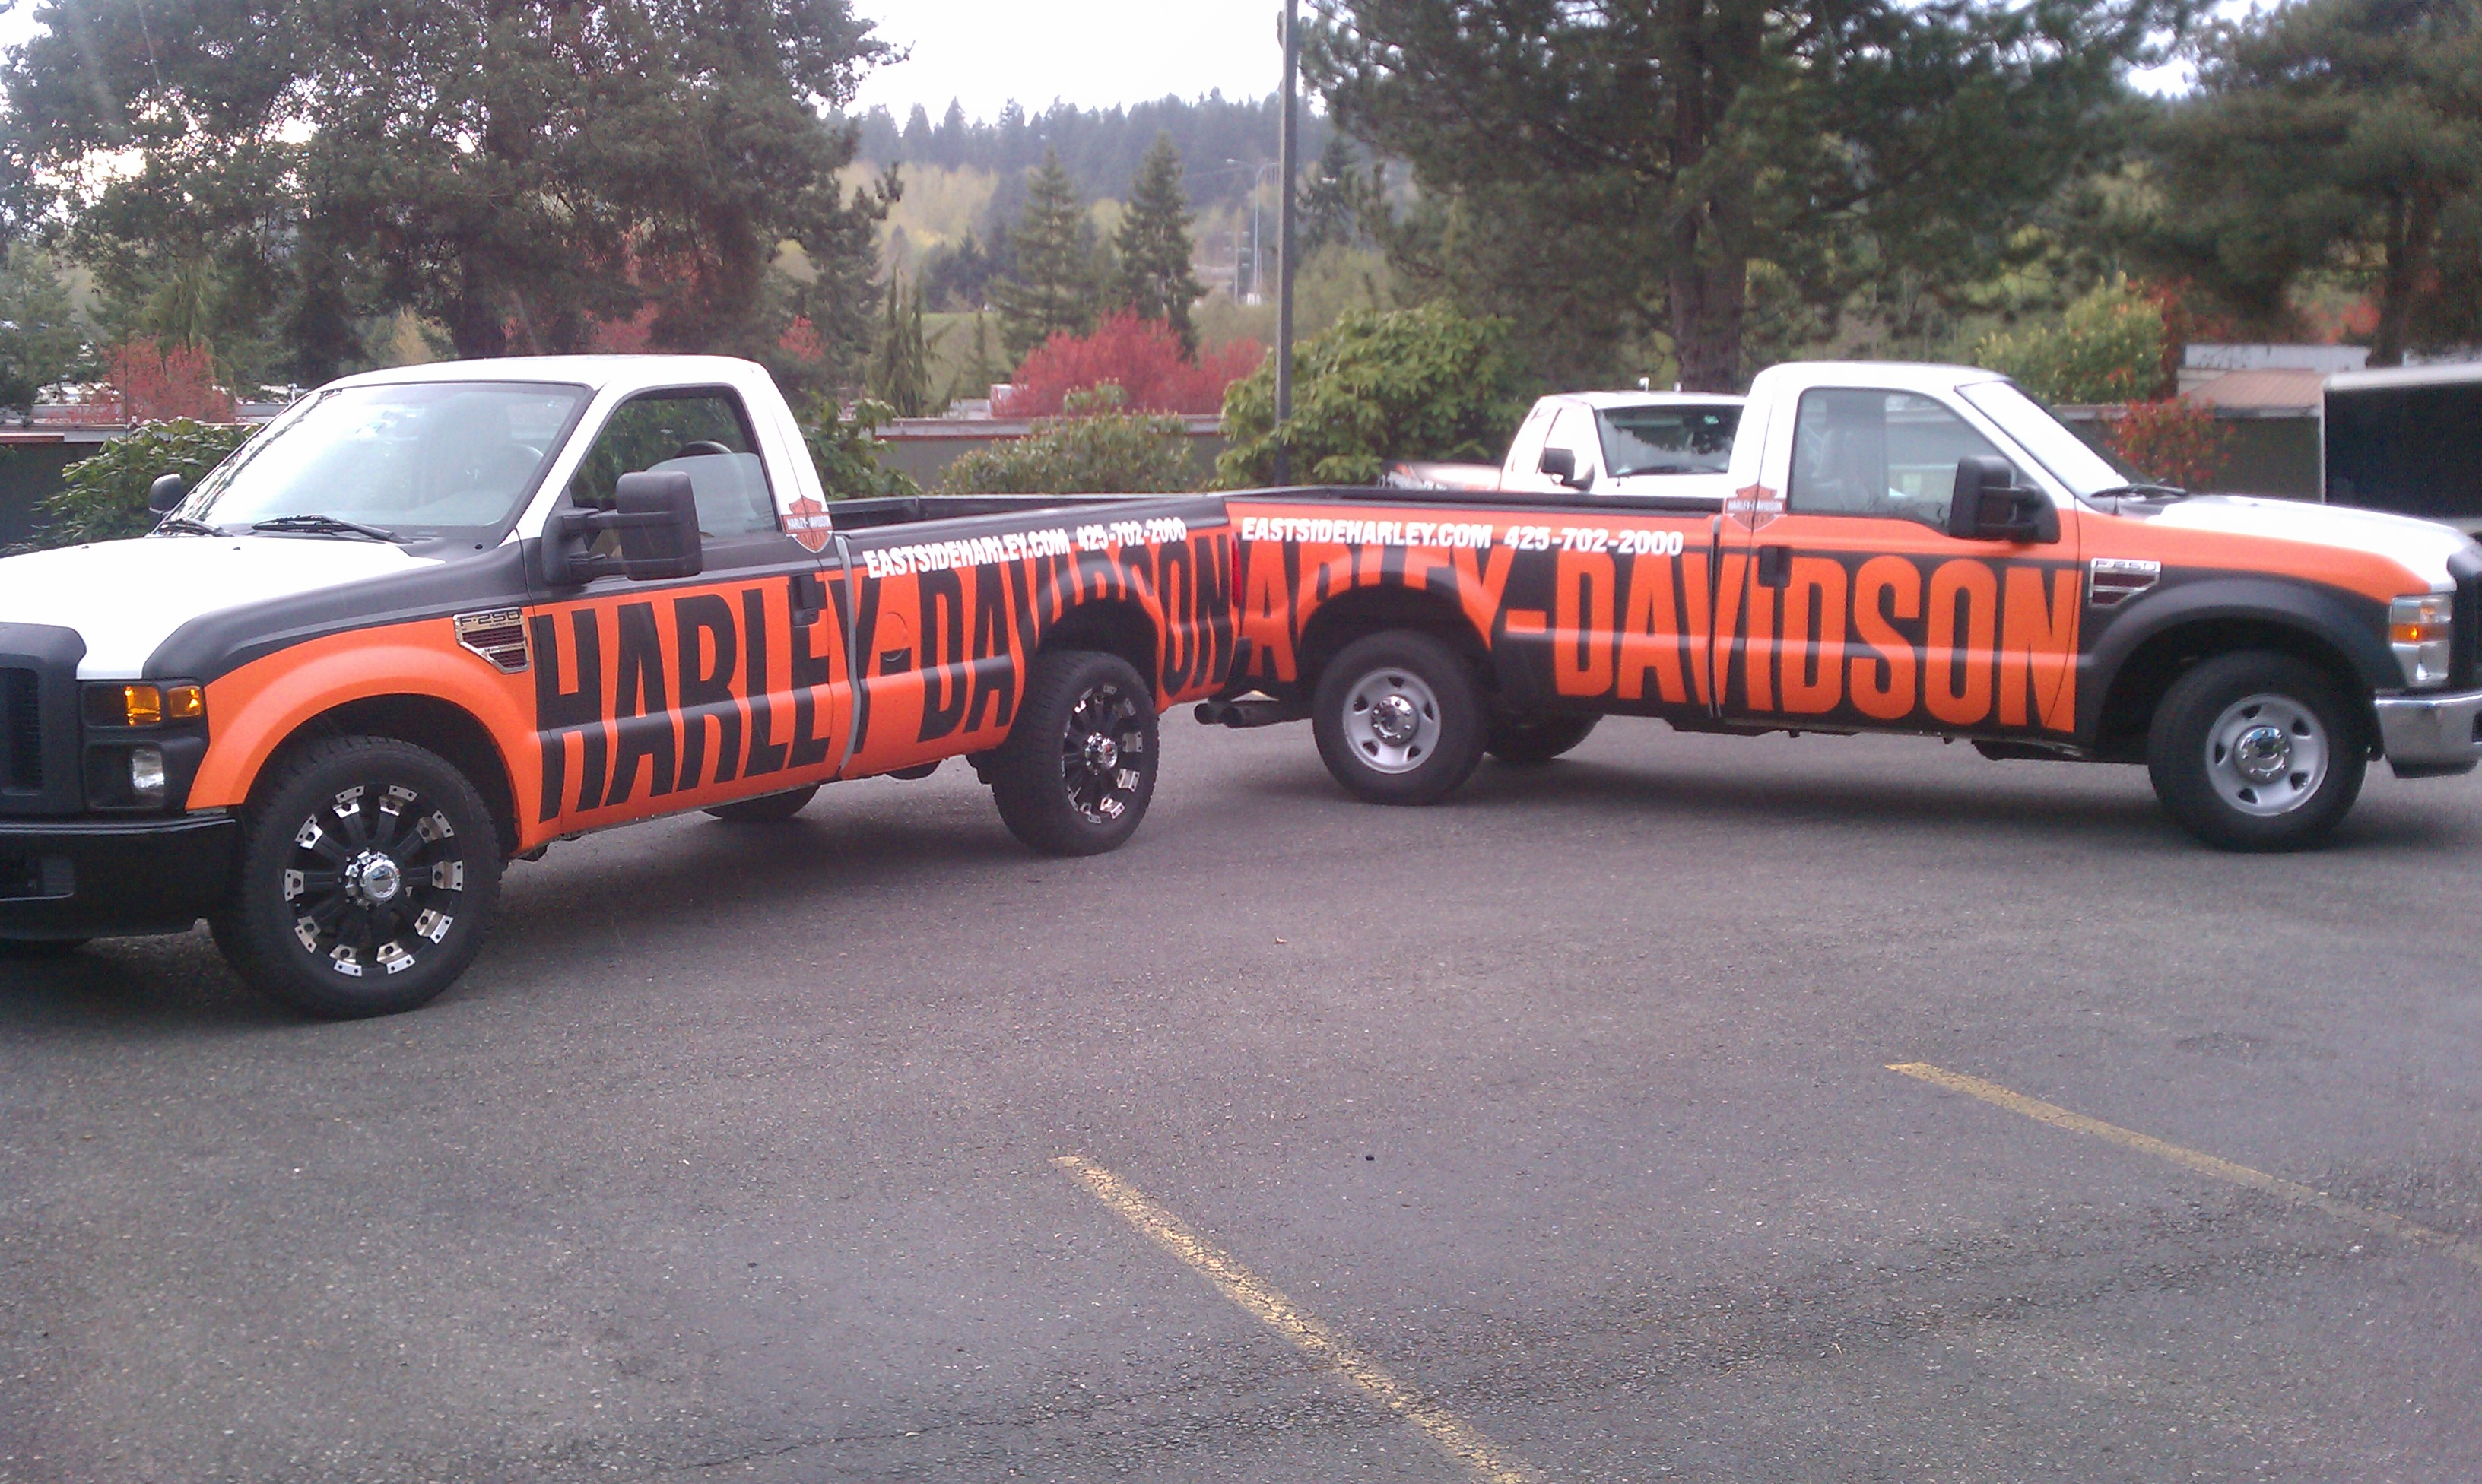 Washington Graphics Designs And Installs Vehicle Wraps For